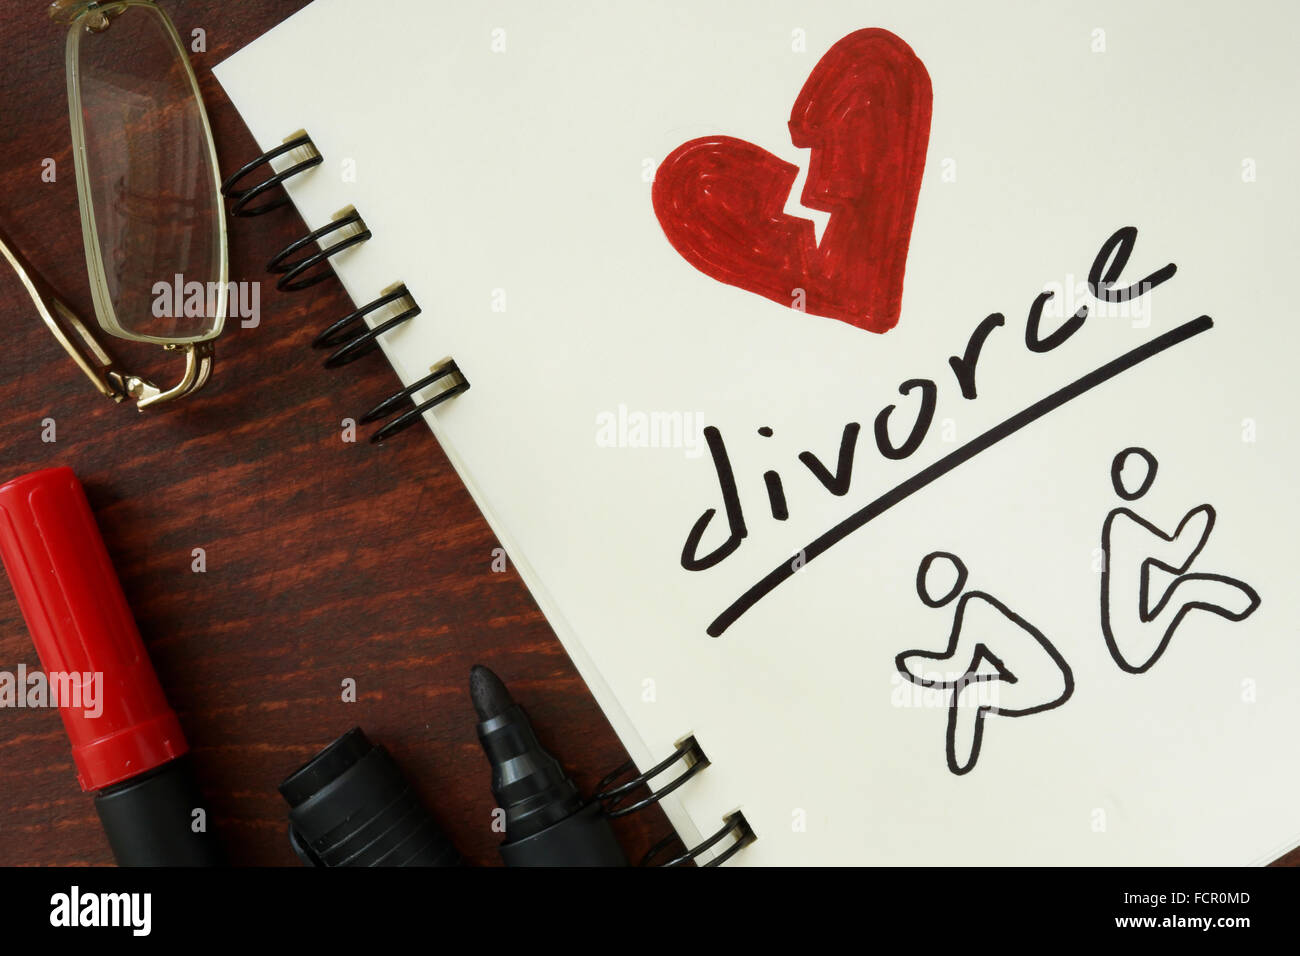 Notepad with divorce on the wooden table. - Stock Image